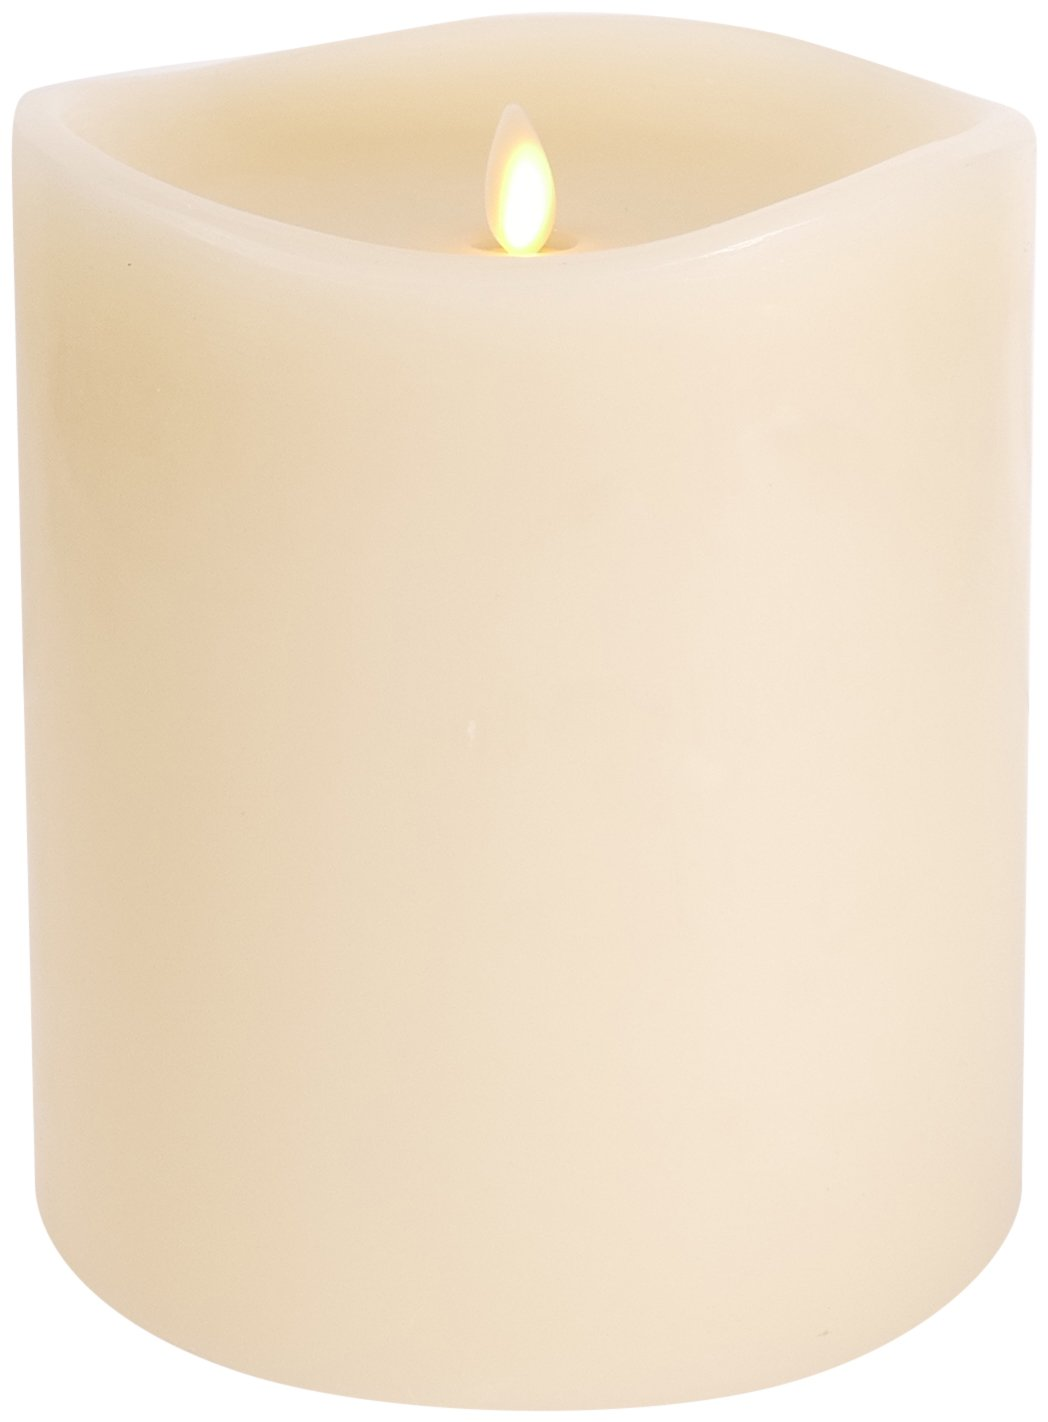 Darice Large Luminara Flameless Candle: 360° Top, Unscented Moving Flame Candle with Timer (6'' Ivory)